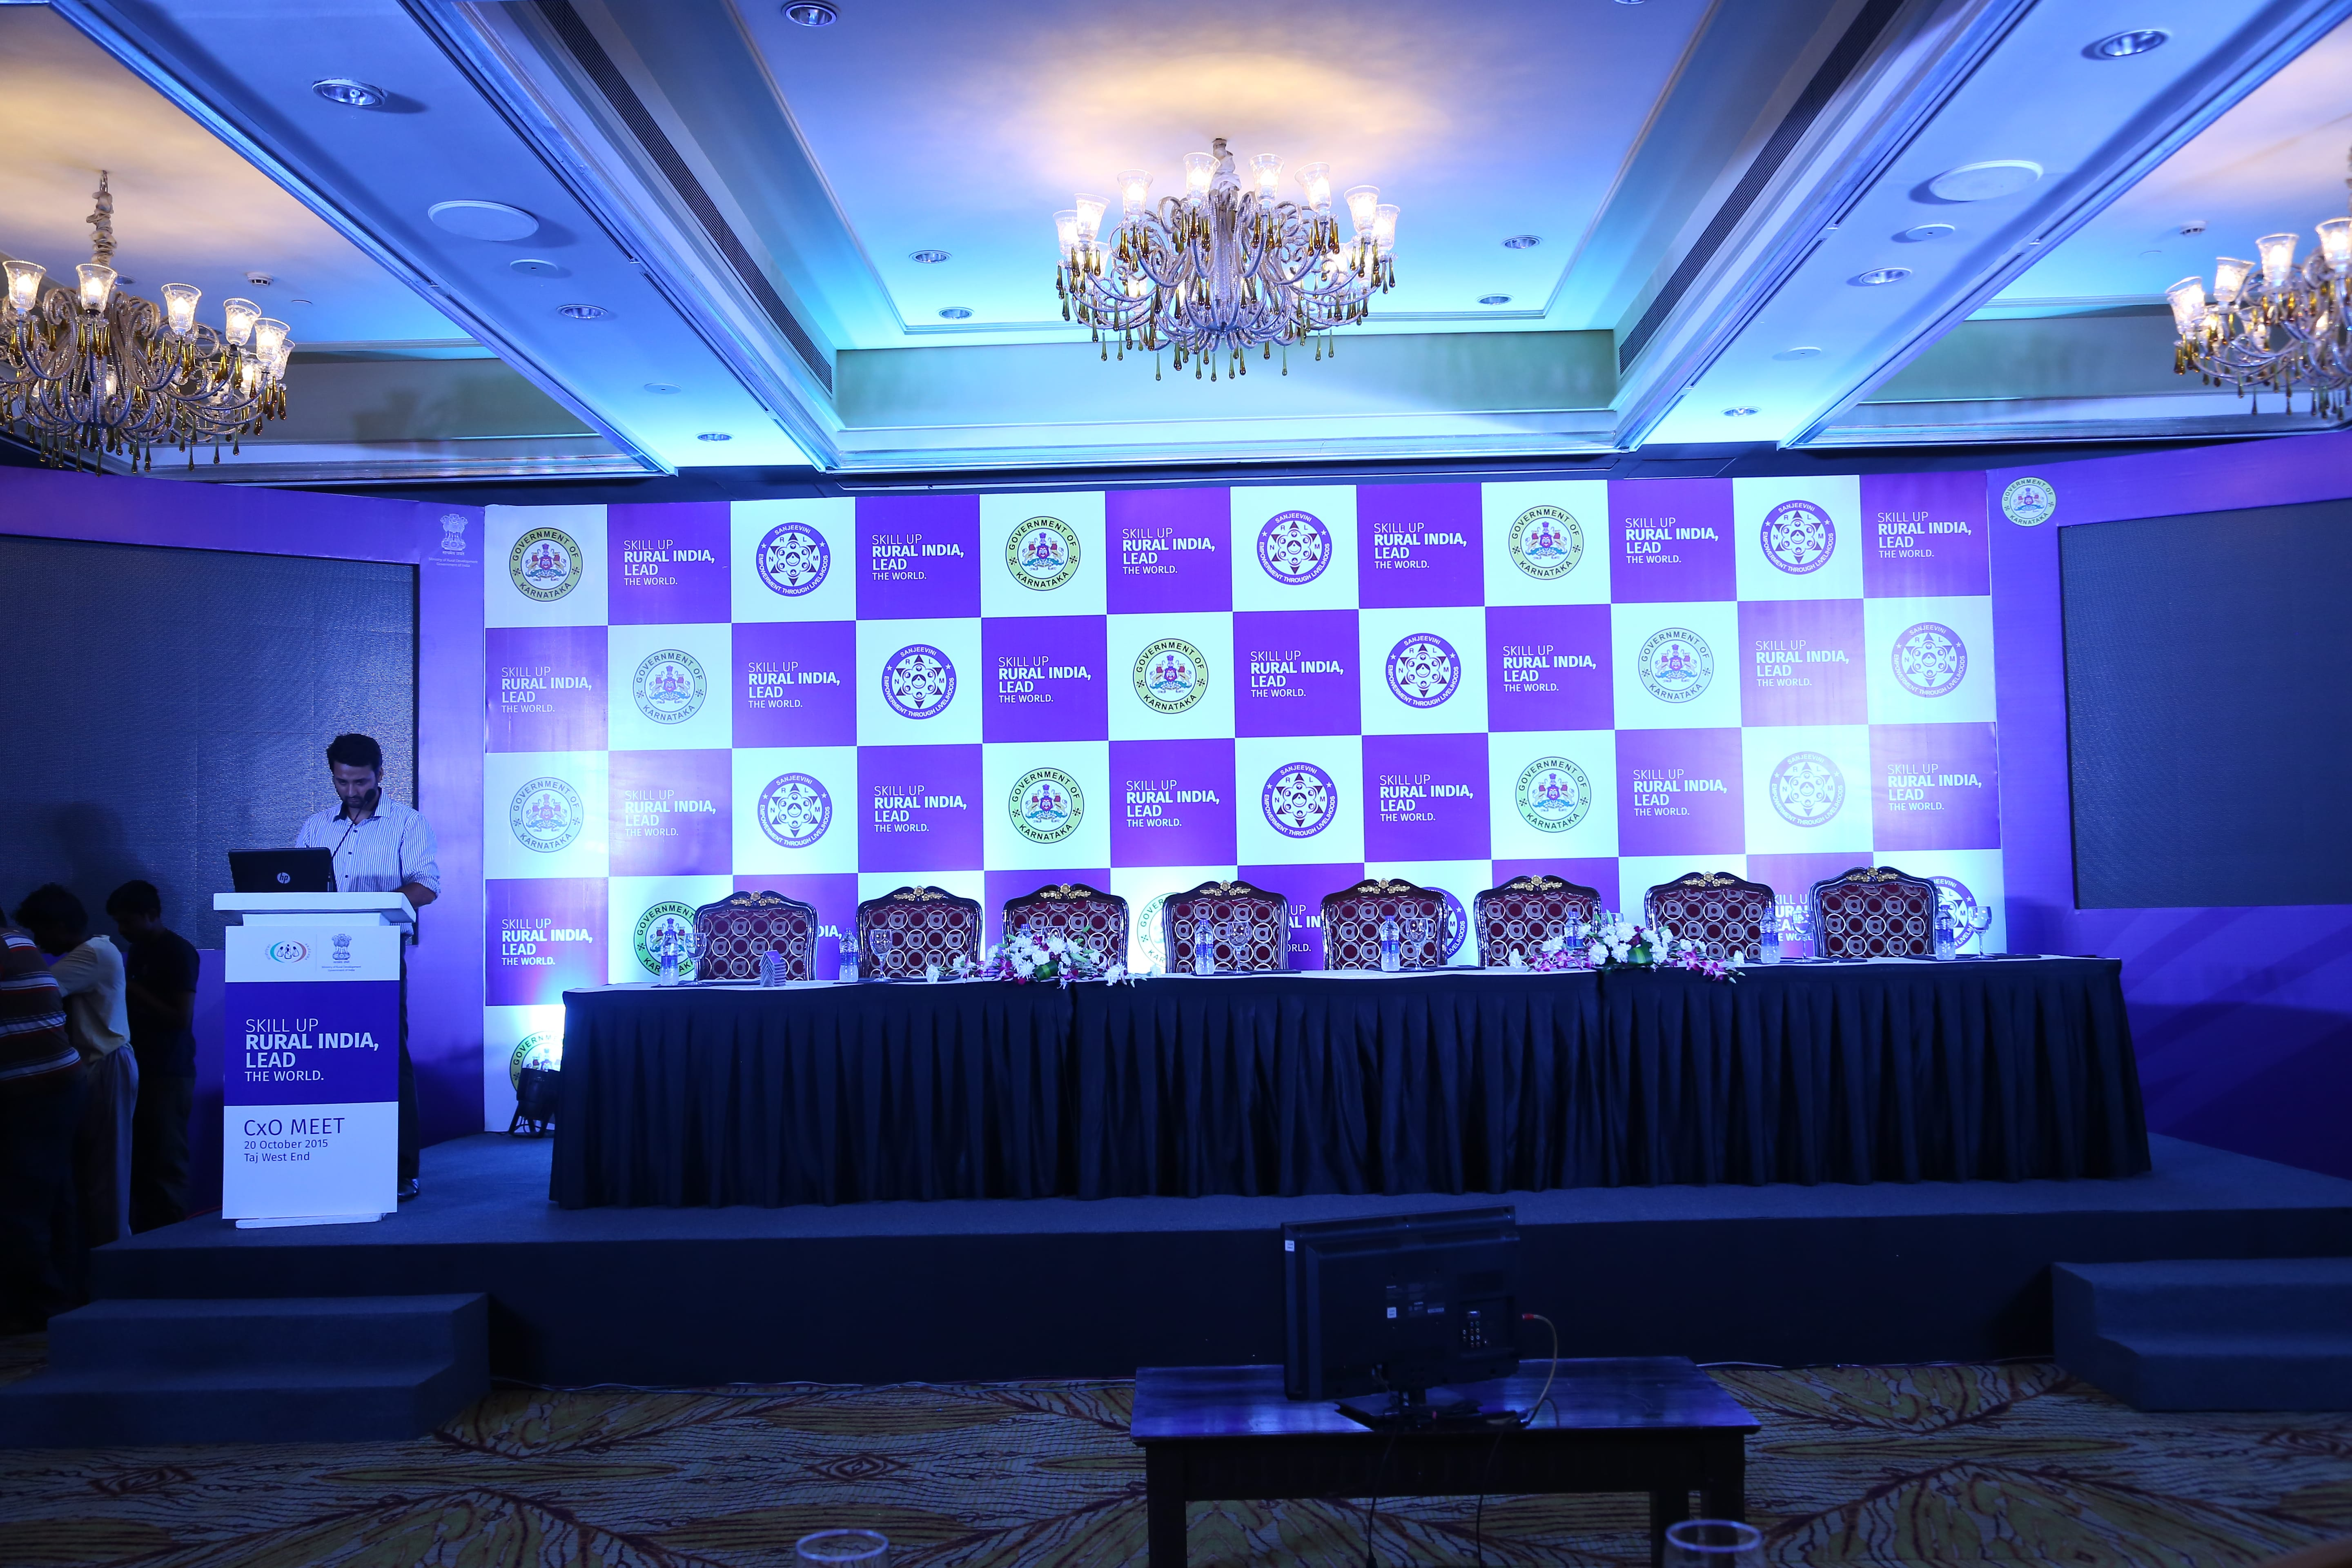 Stage of event at The Taj West End